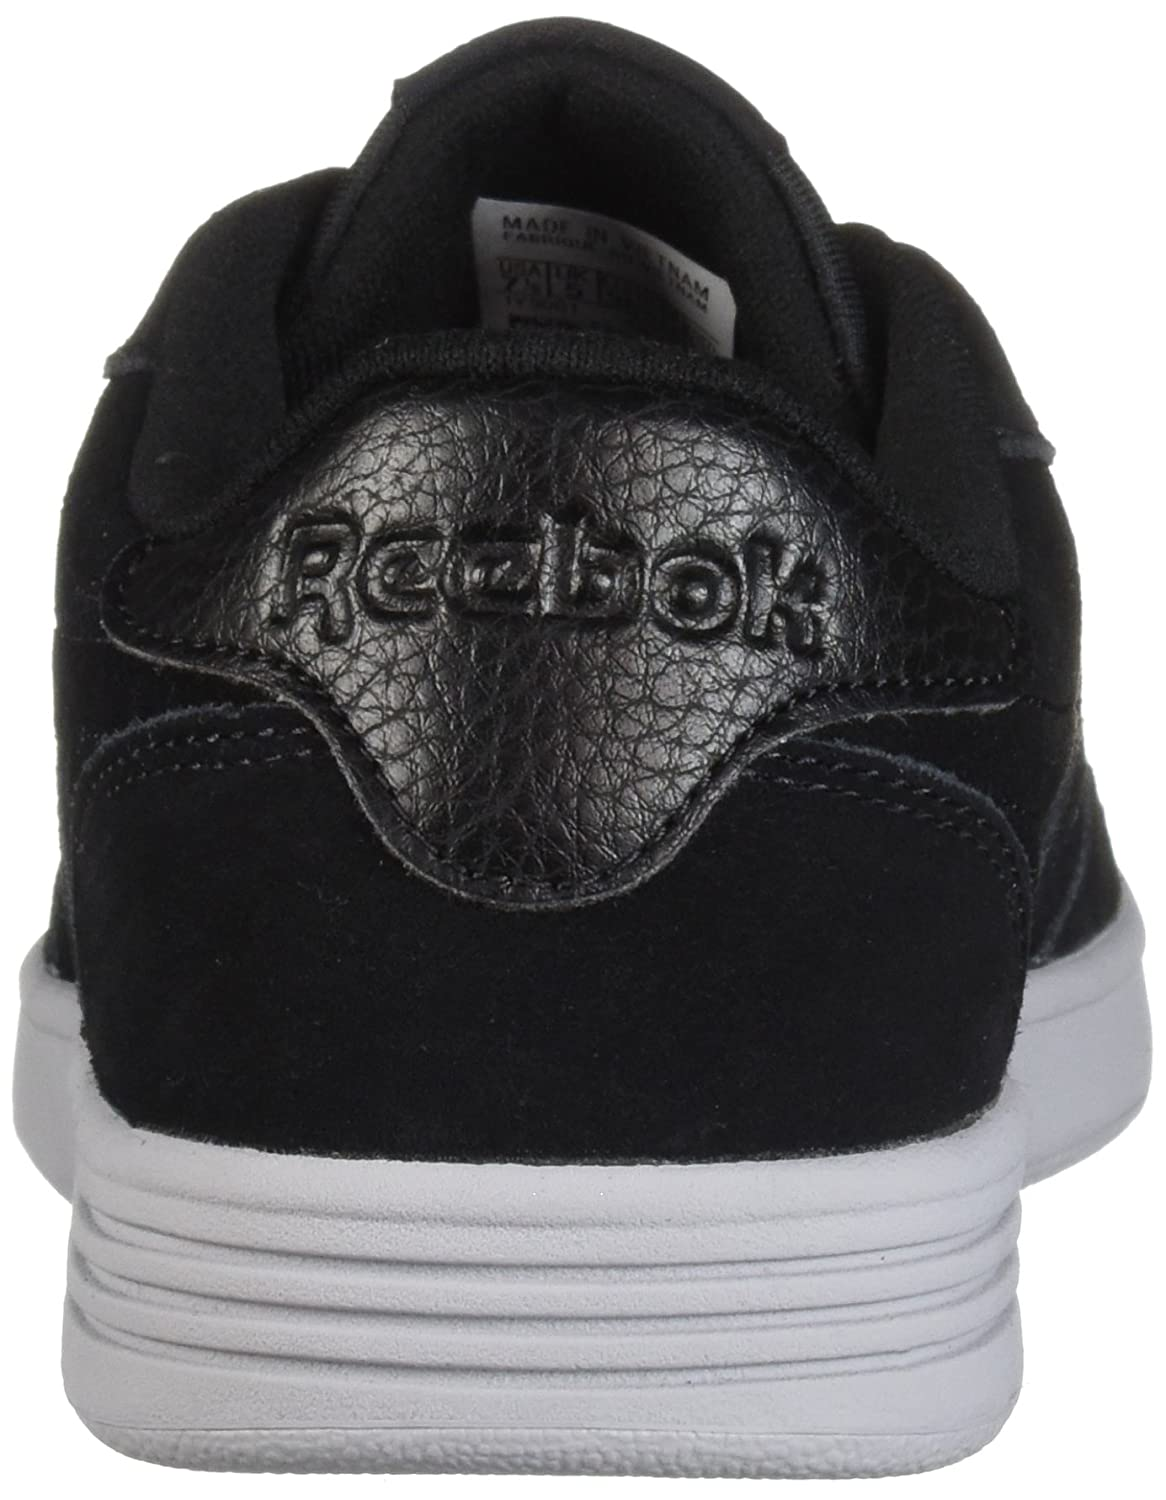 Reebok Women's 5 Club MEMT Sneaker B077ZGS22Q 5 Women's M US|Us-black/Cool Shadow 9929fd